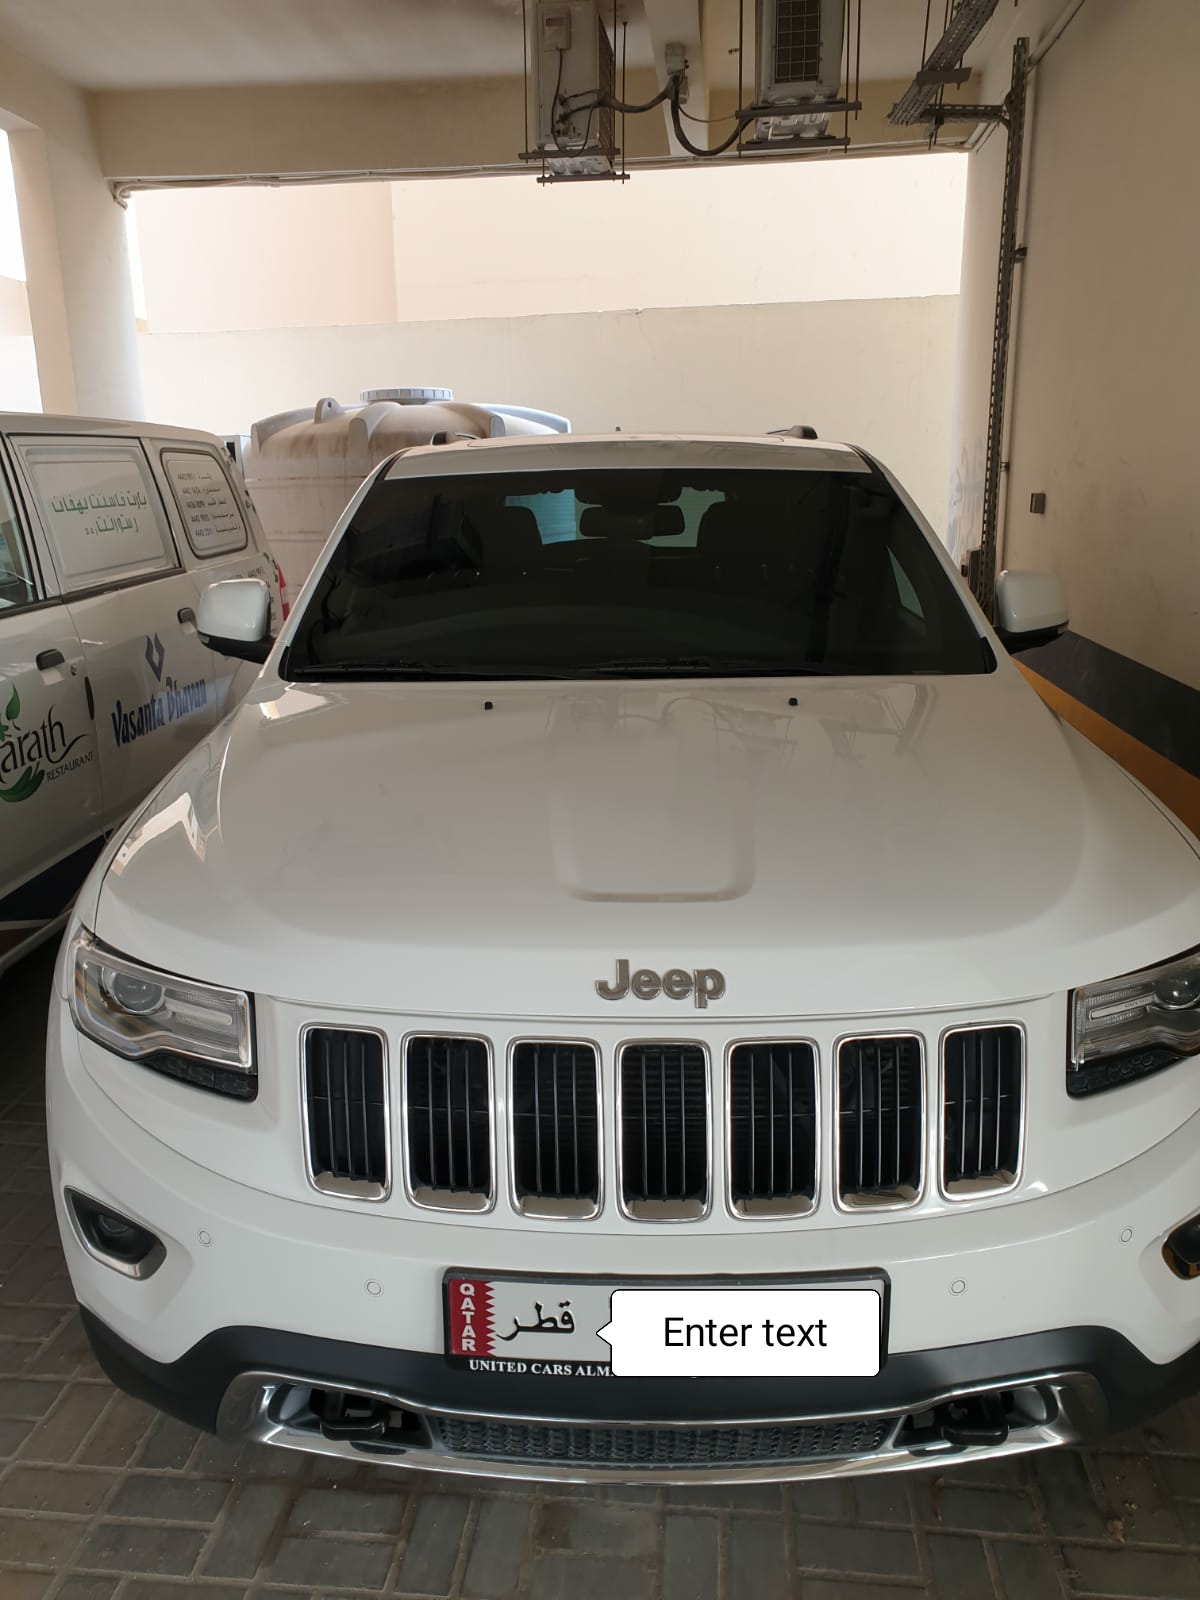 2018-Registered-2016-model-Jeep-Grand-Cherokee-Limited